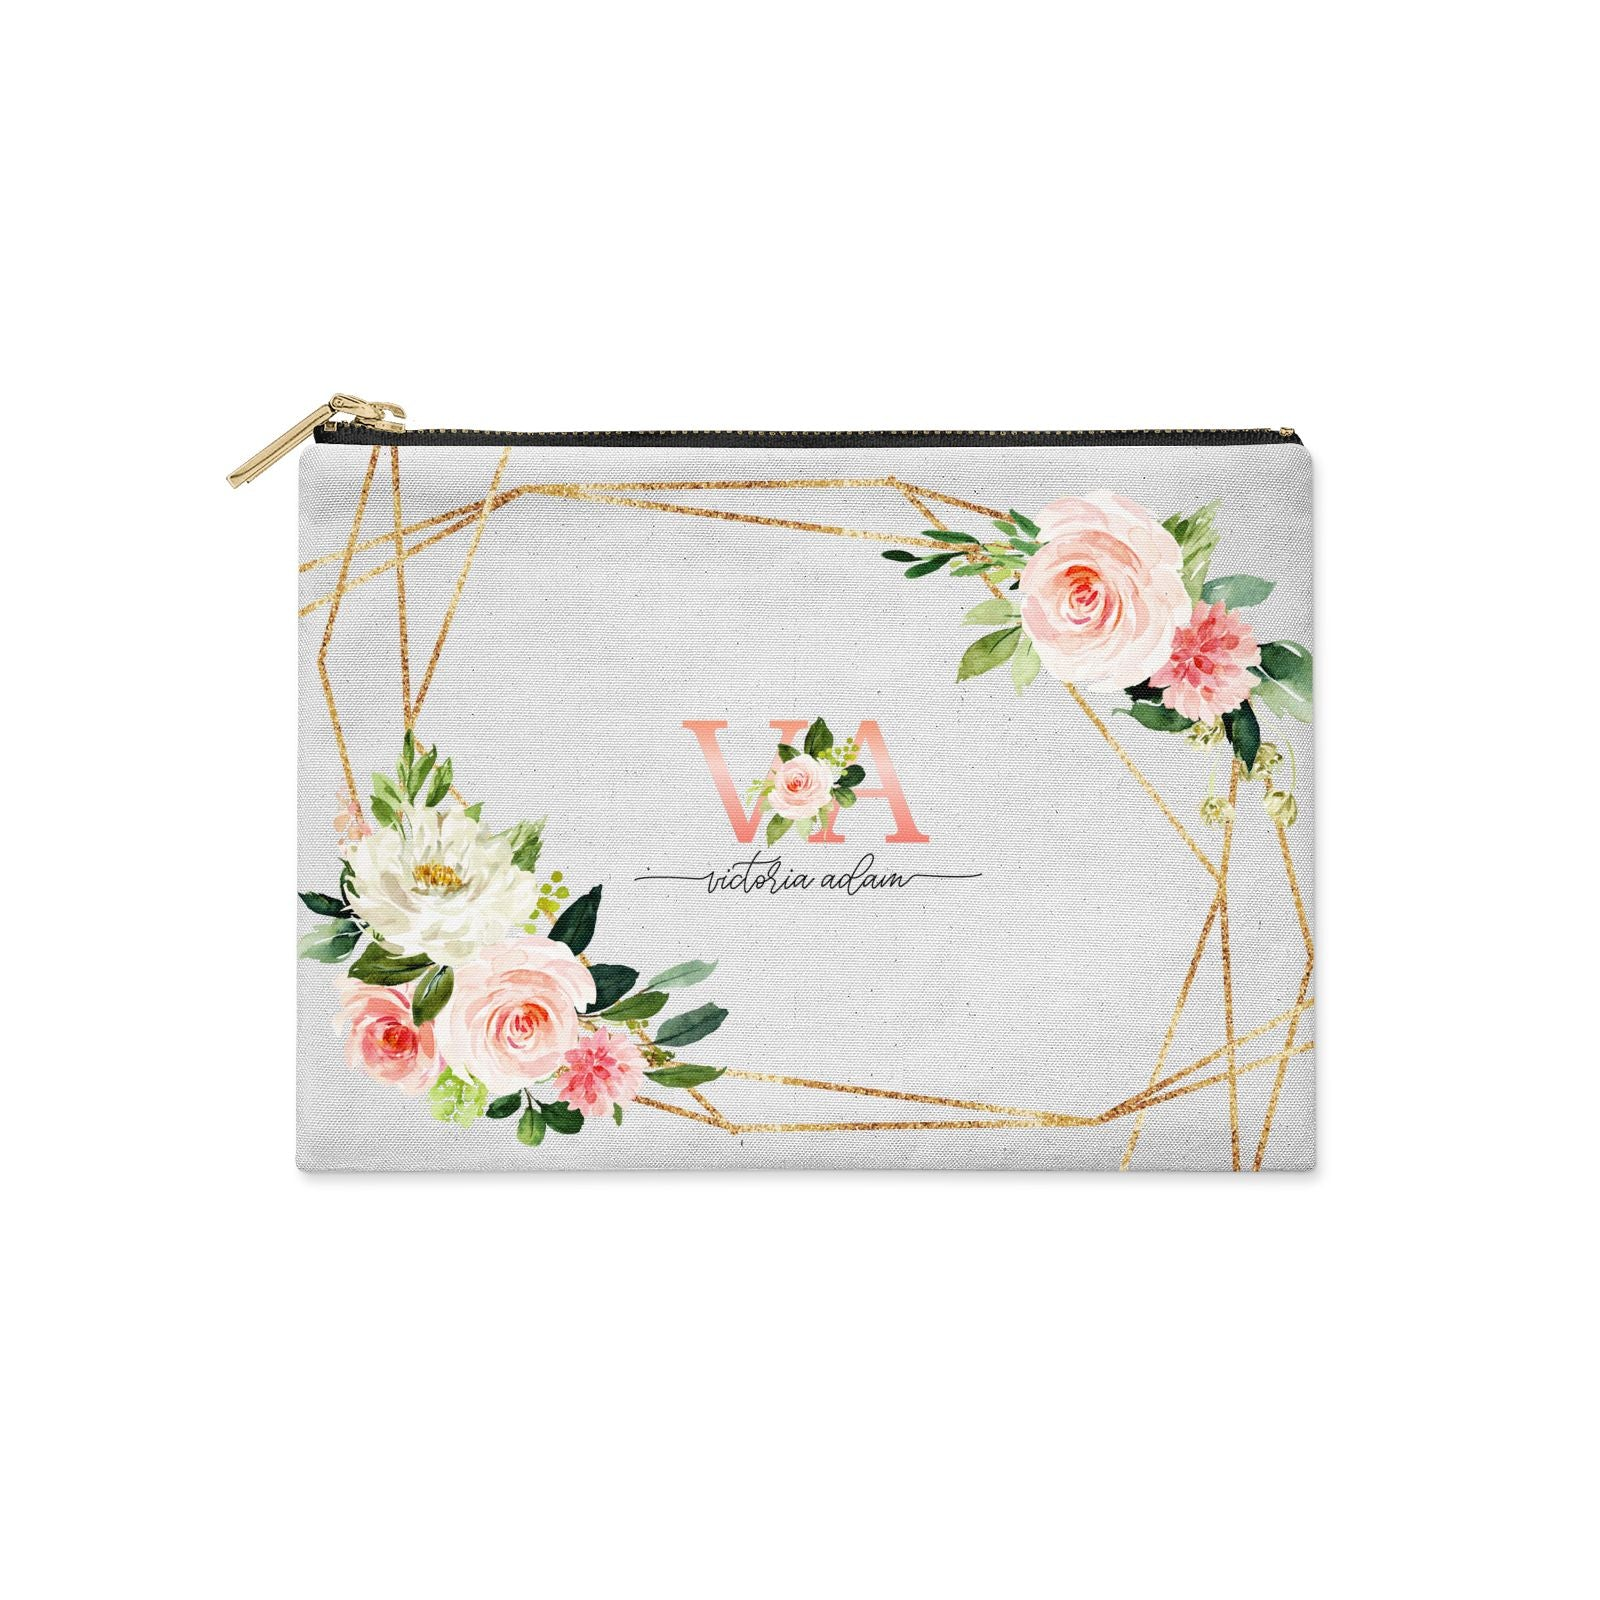 Blush Pink Rose Floral Personalised Clutch Bag Zipper Pouch